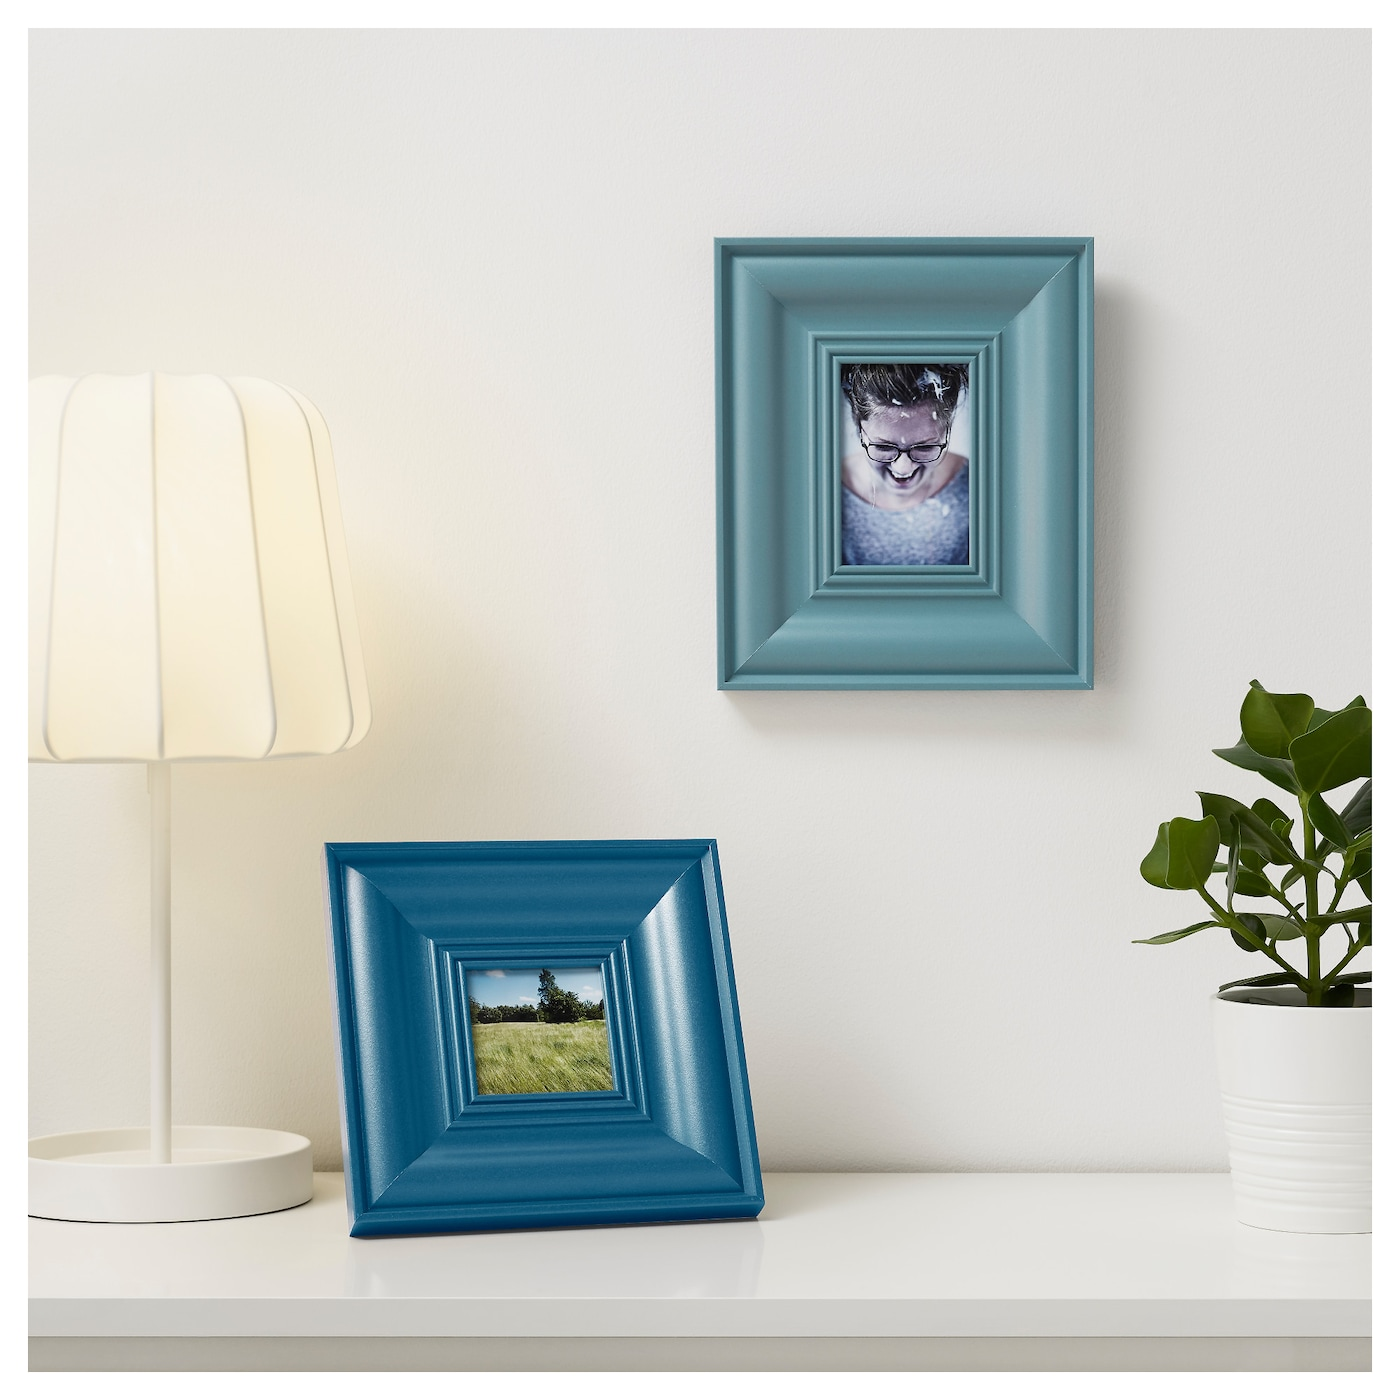 IKEA SKATTEBY frame, set of 2 Front protection in durable plastic makes the frame safer to use.